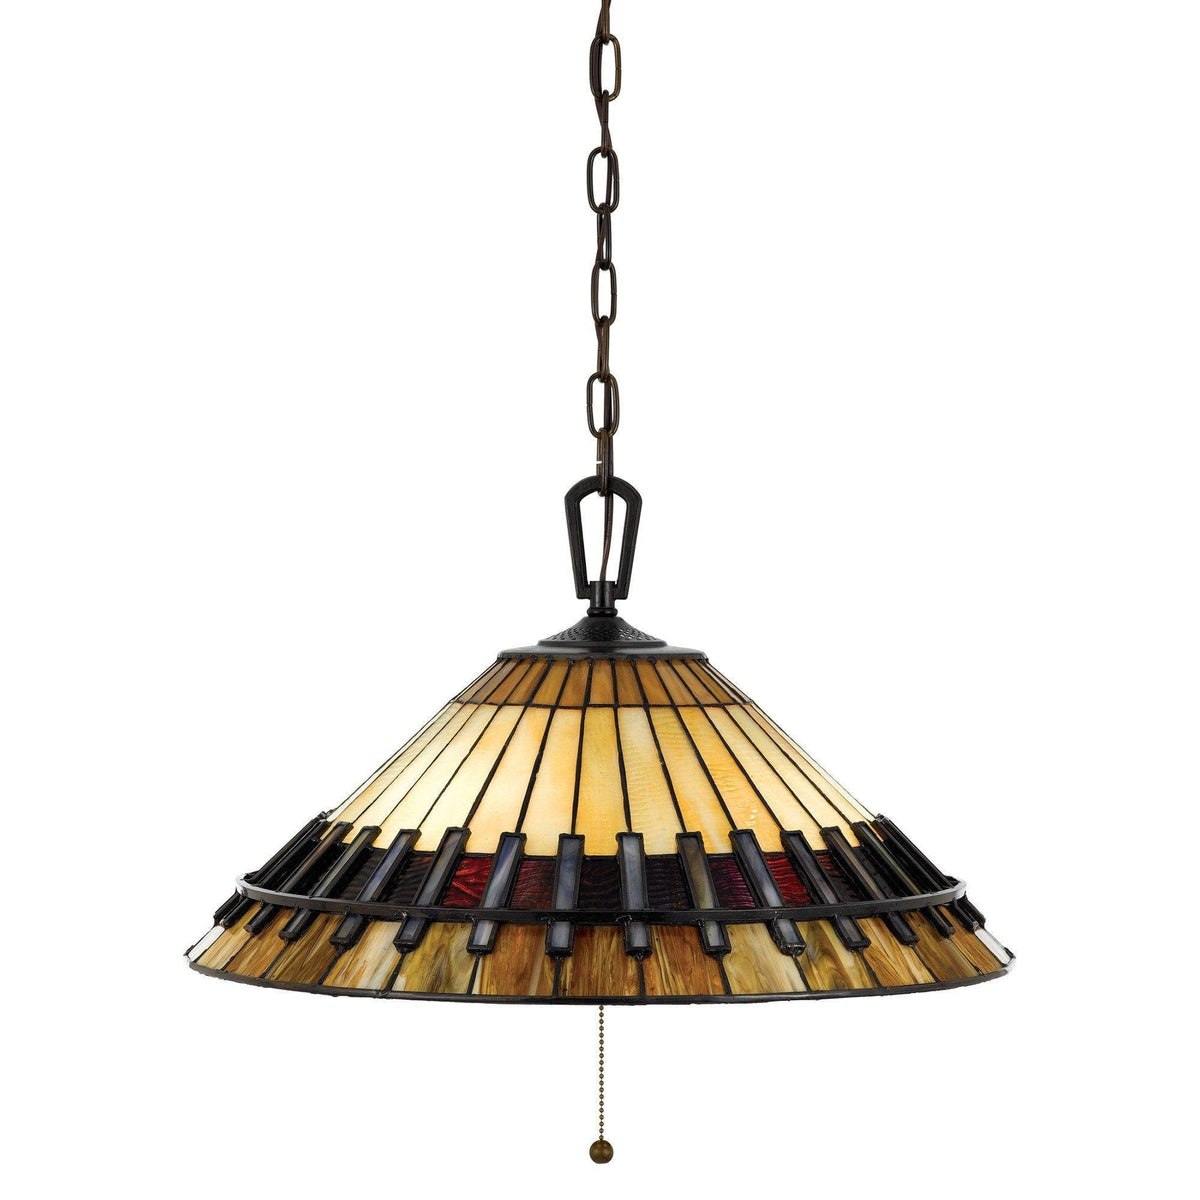 Tiffany Ceiling Pendant Lights - Quoizel Tiffany Chastain Ceiling Pendant Light QZ/CHASTAIN/P